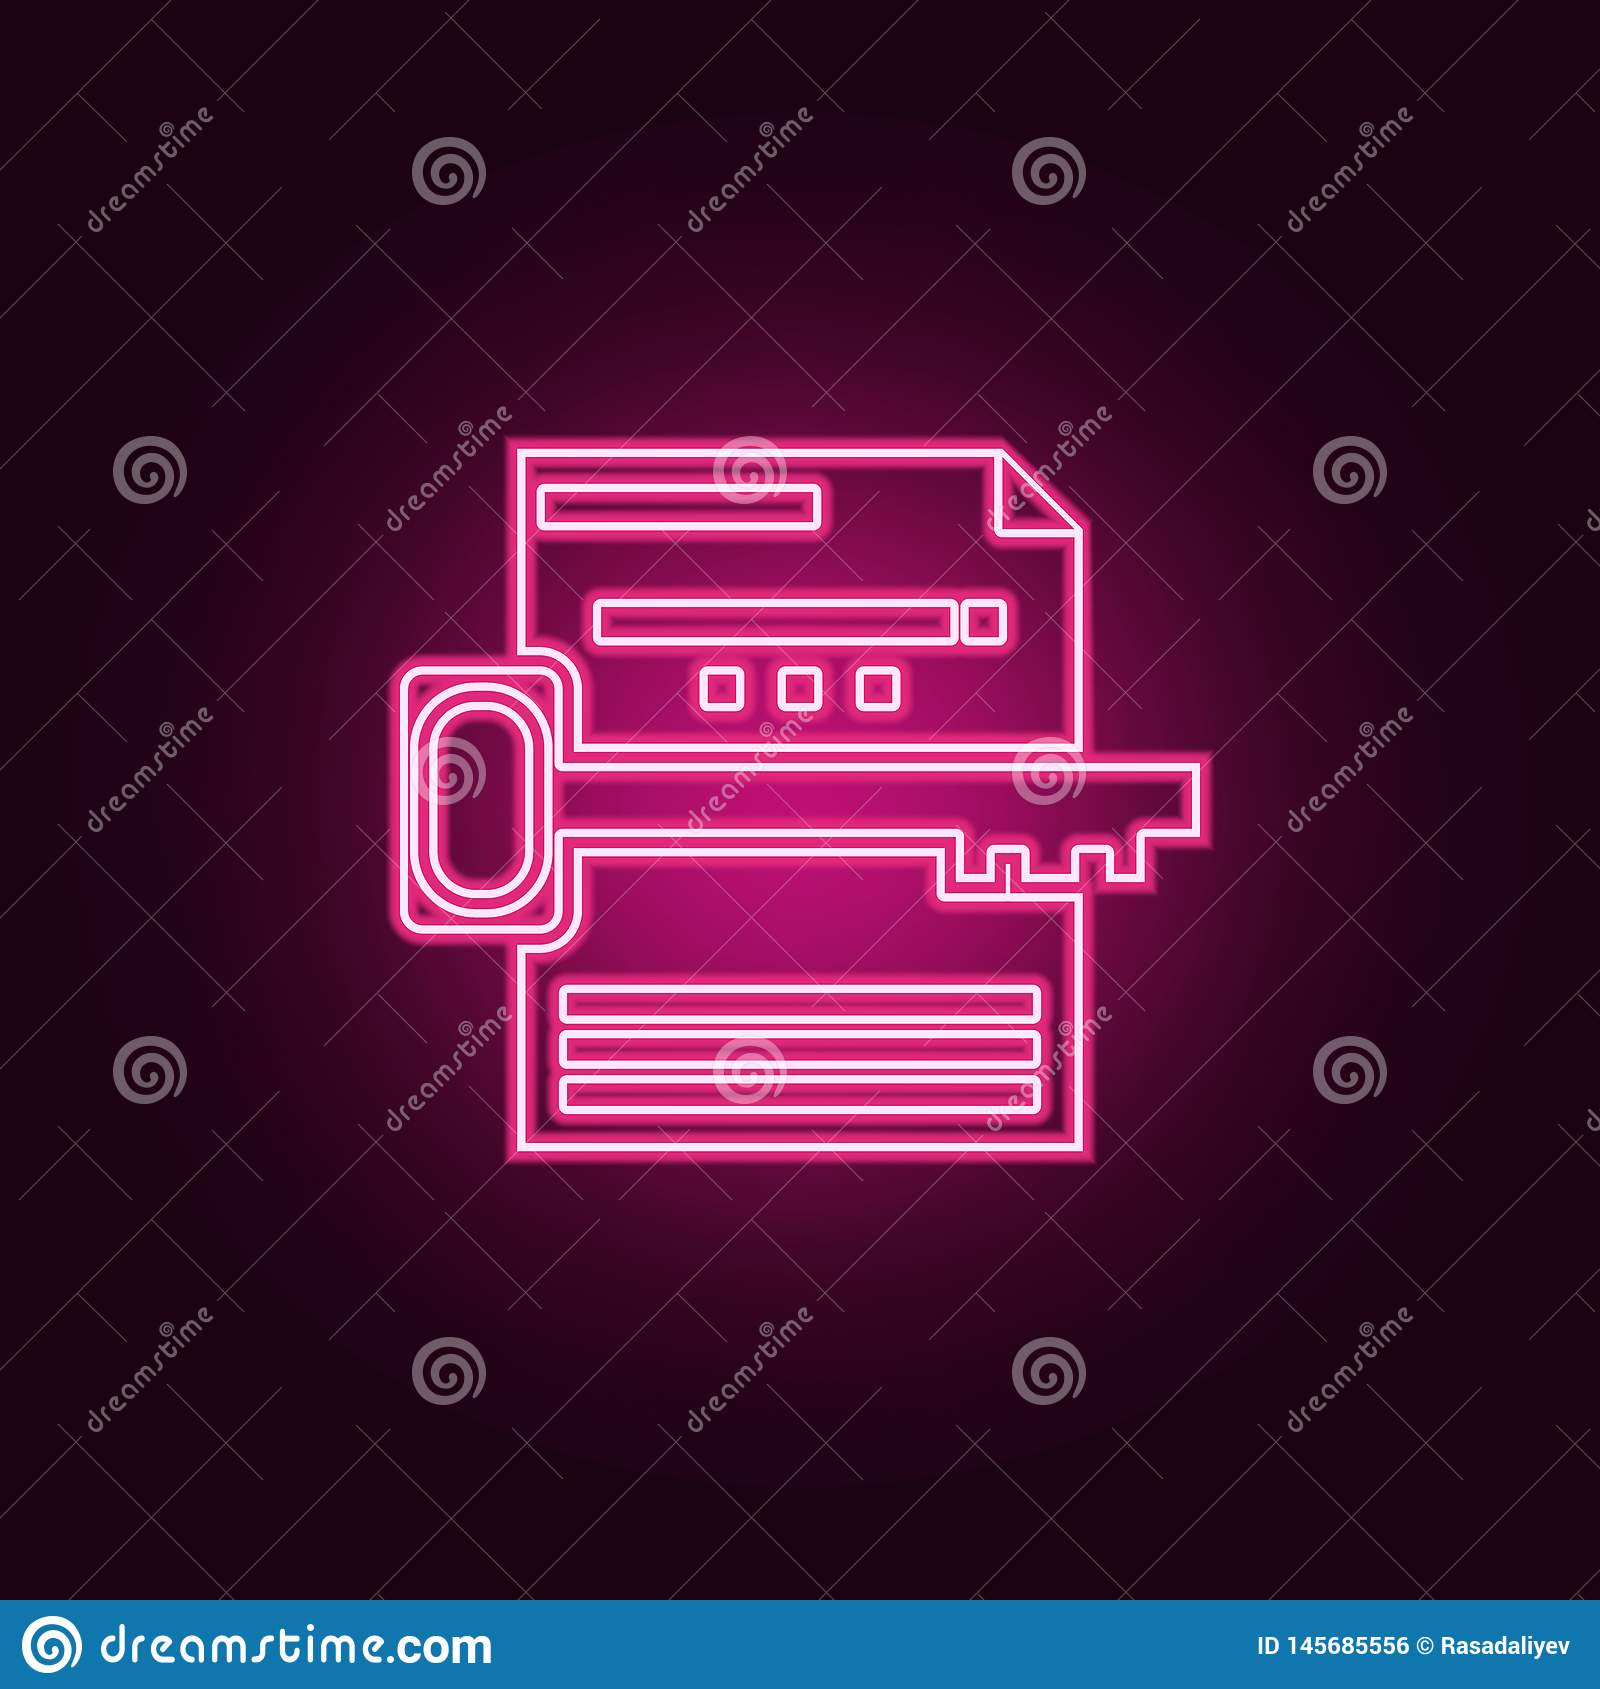 keyword search icon. Elements of Web Development in neon style icons. Simple icon for websites, web design, mobile app, info